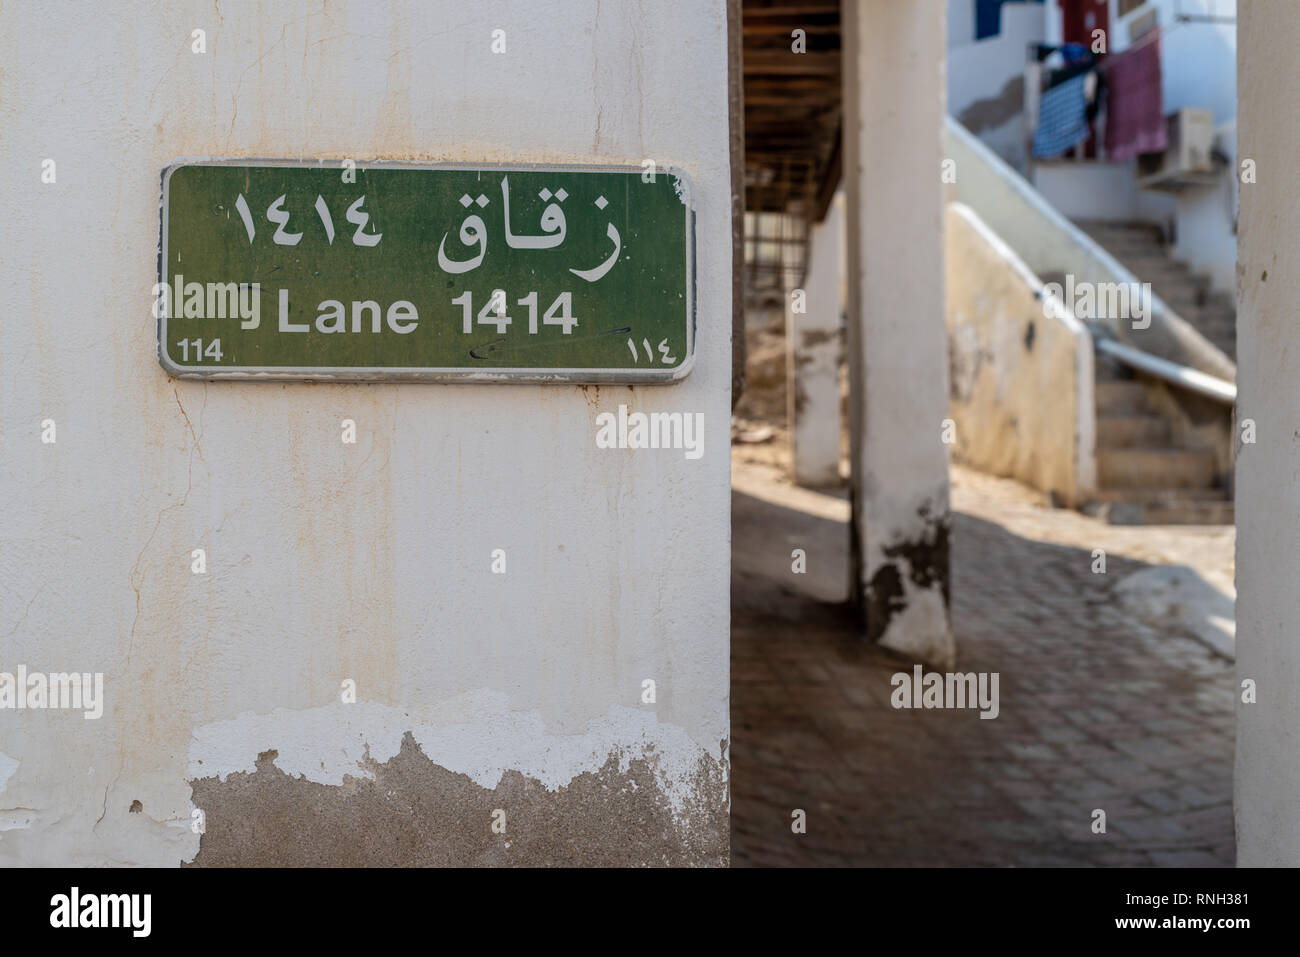 Street sign and number in the historical district of Matrah, City of Muscat, Sultanate of Oman. - Stock Image